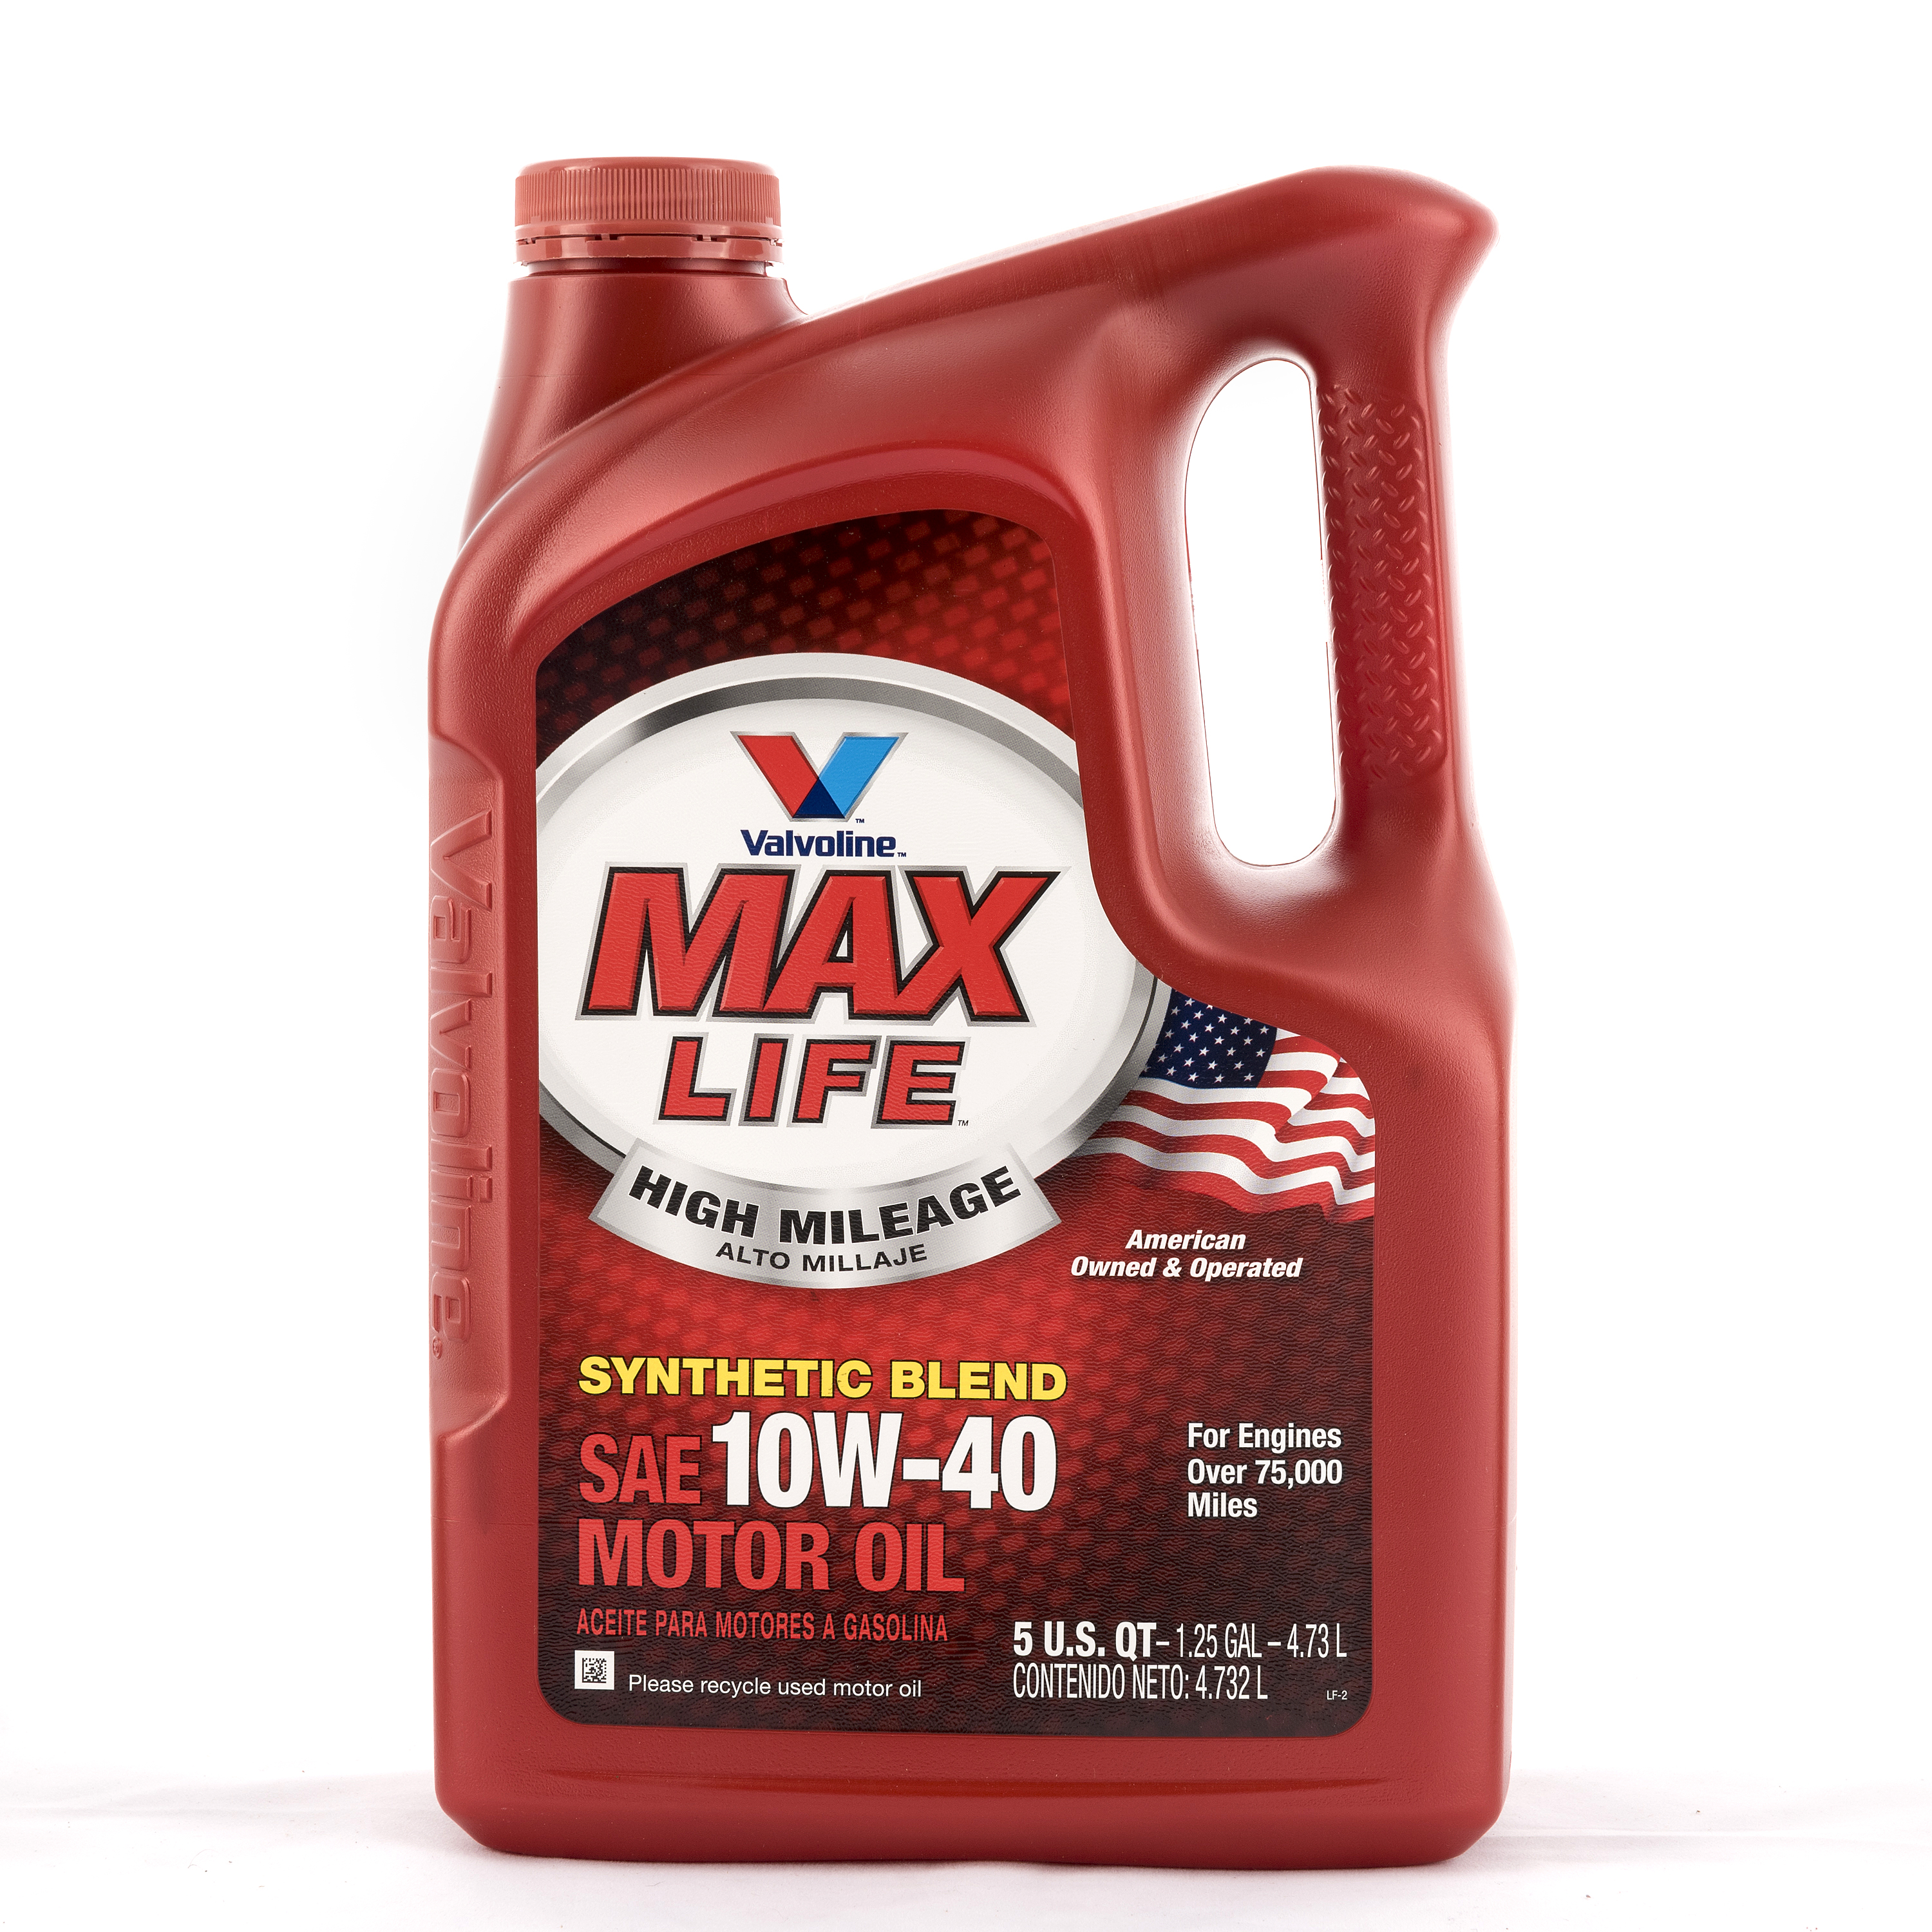 Valvoline MaxLife High Mileage 10W-40 Motor Oil, 5 Quarts